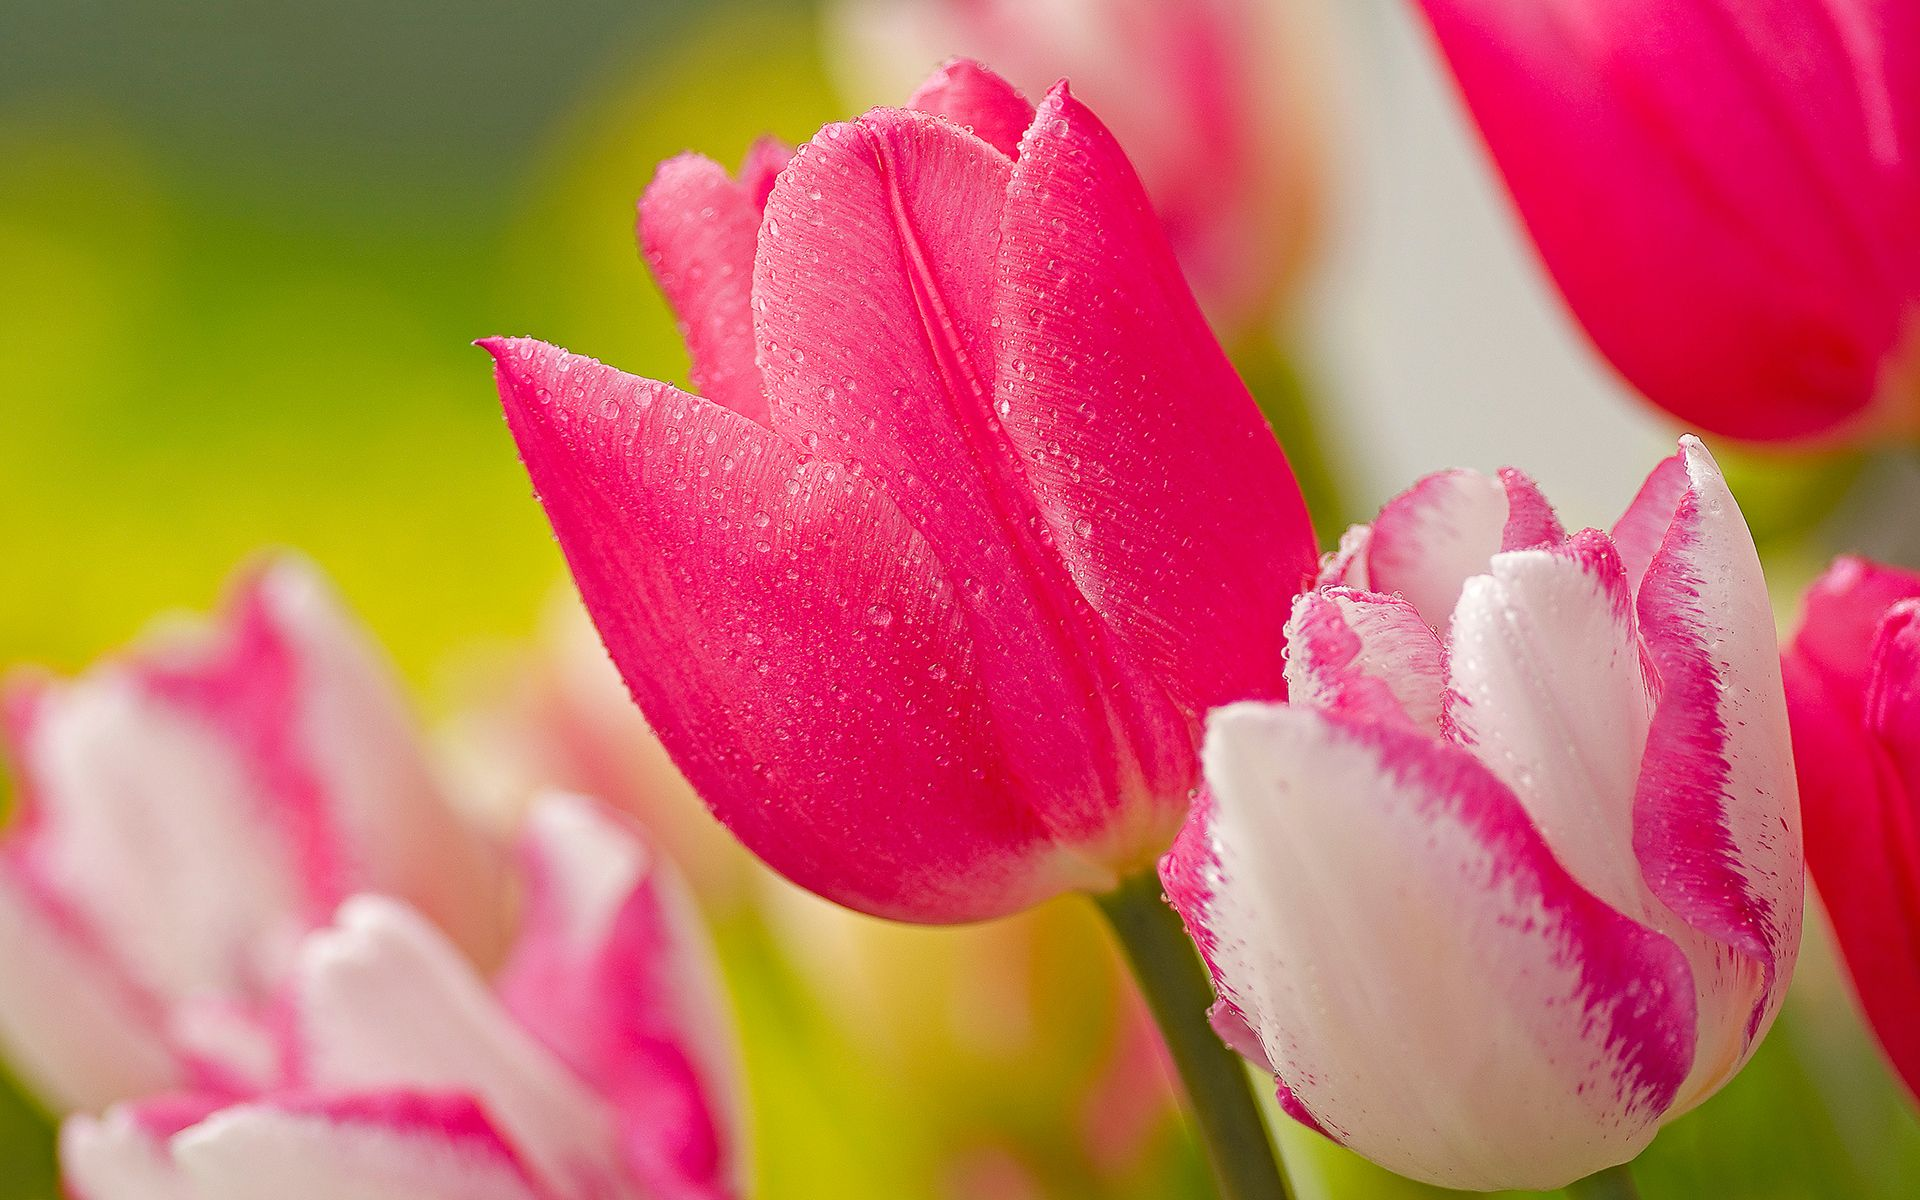 Fresh Wallpapers Collection For Your Pc And Phone On Eskipaper Com Pink Flowers Wallpaper Tulips Images Flower Wallpaper